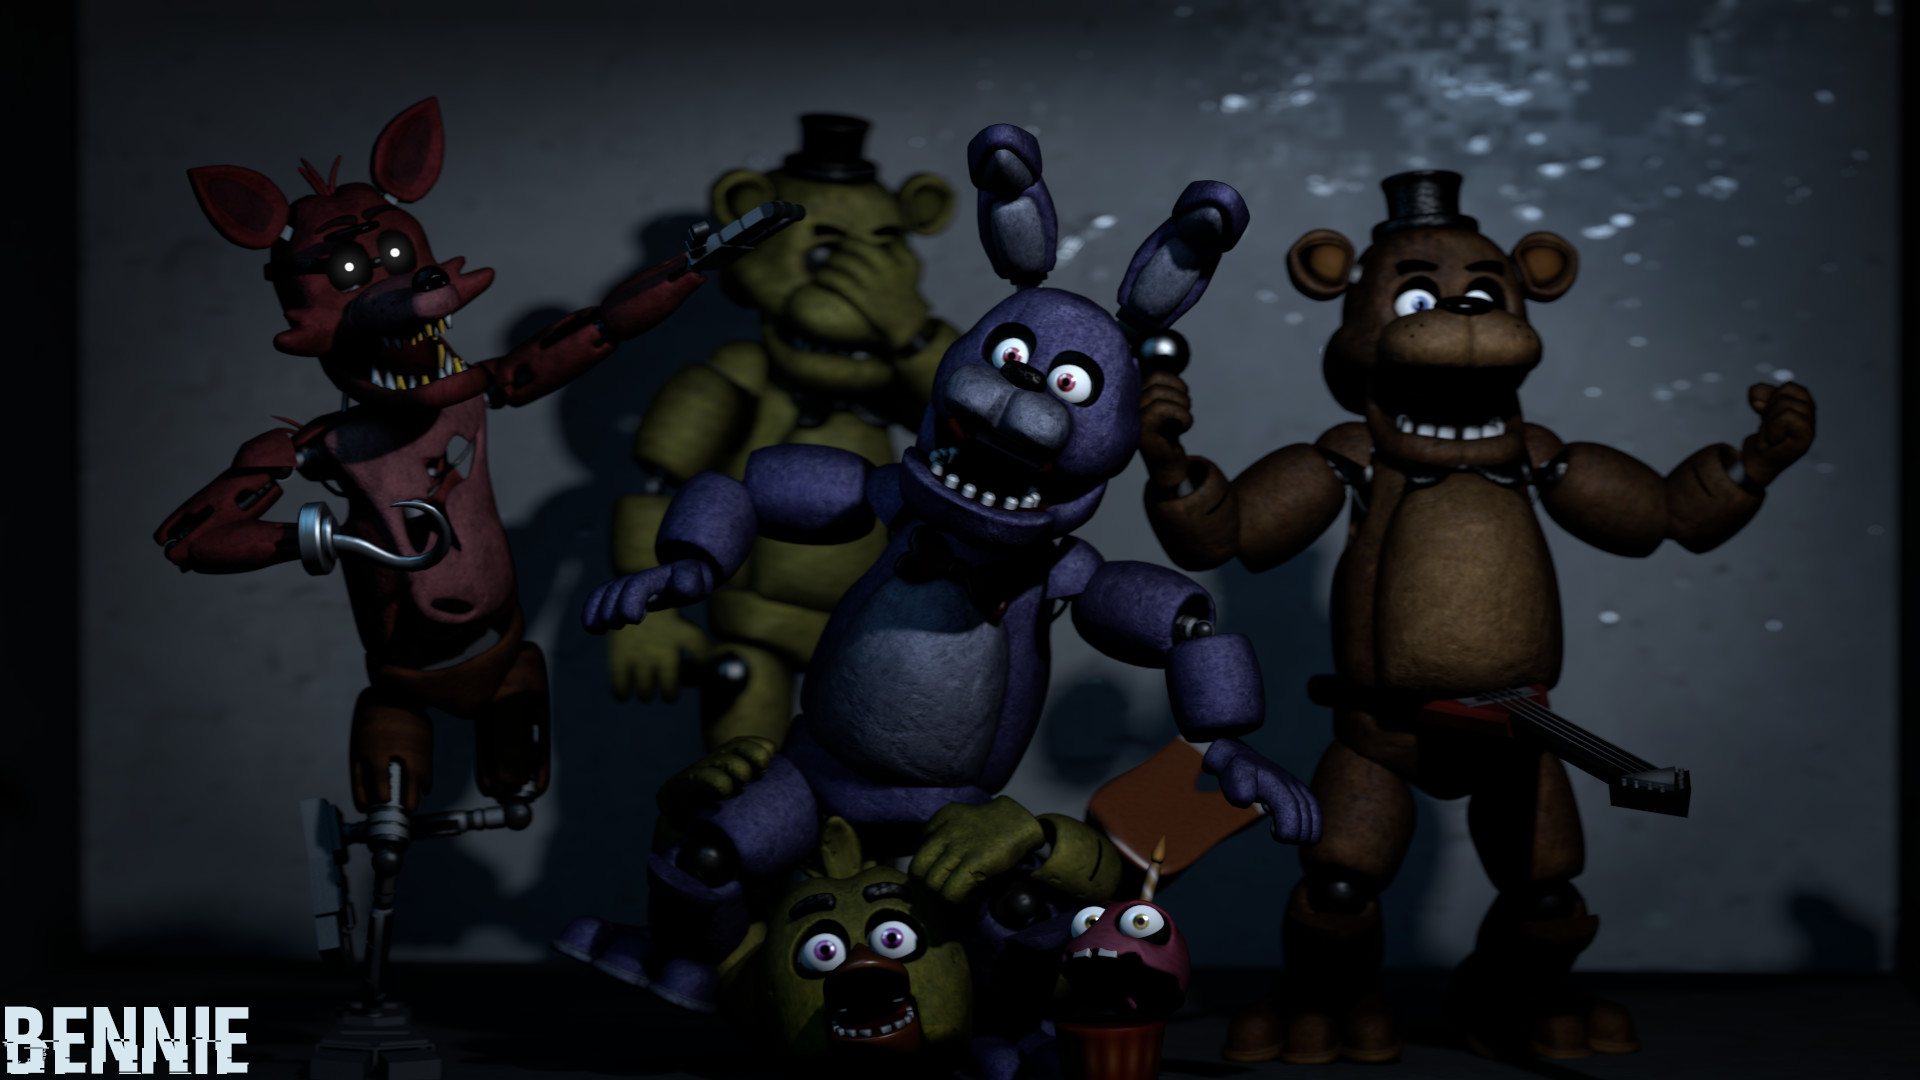 Fnaf 1 Wallpapers Hd Wallpaper Collections 4kwallpaper Wiki